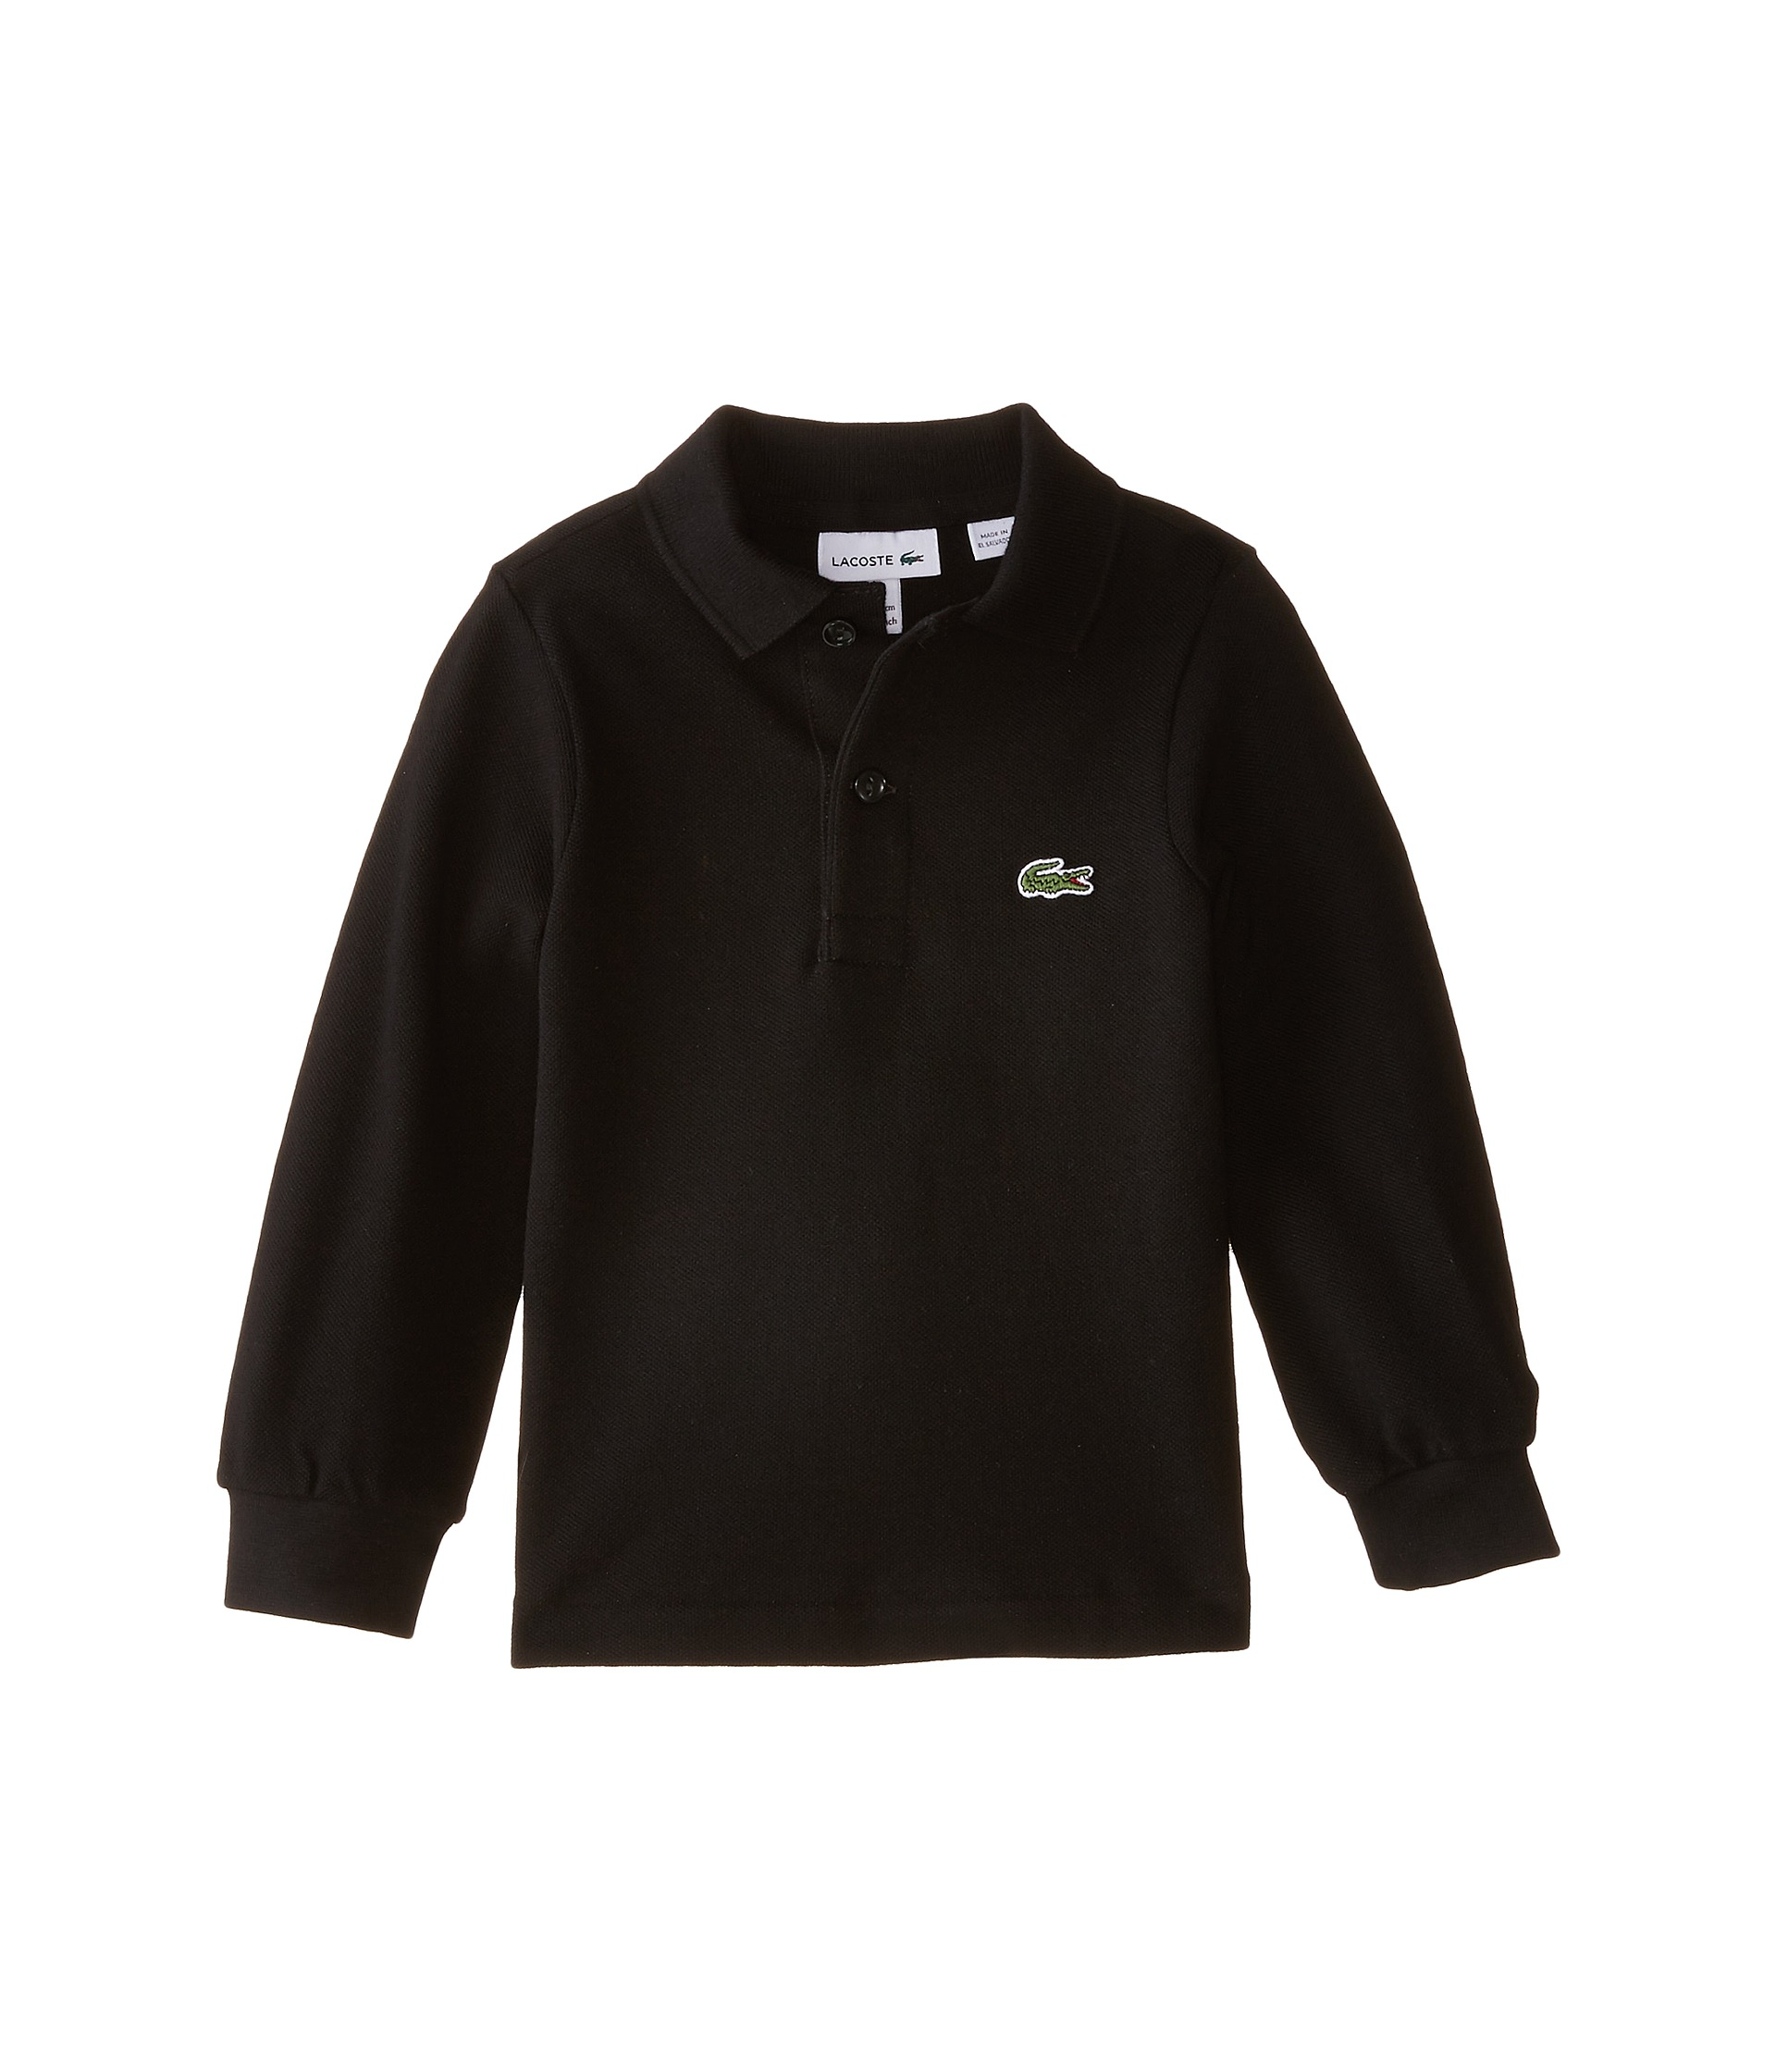 Lacoste Kids Long Sleeve Classic Pique Polo Shirt Toddler